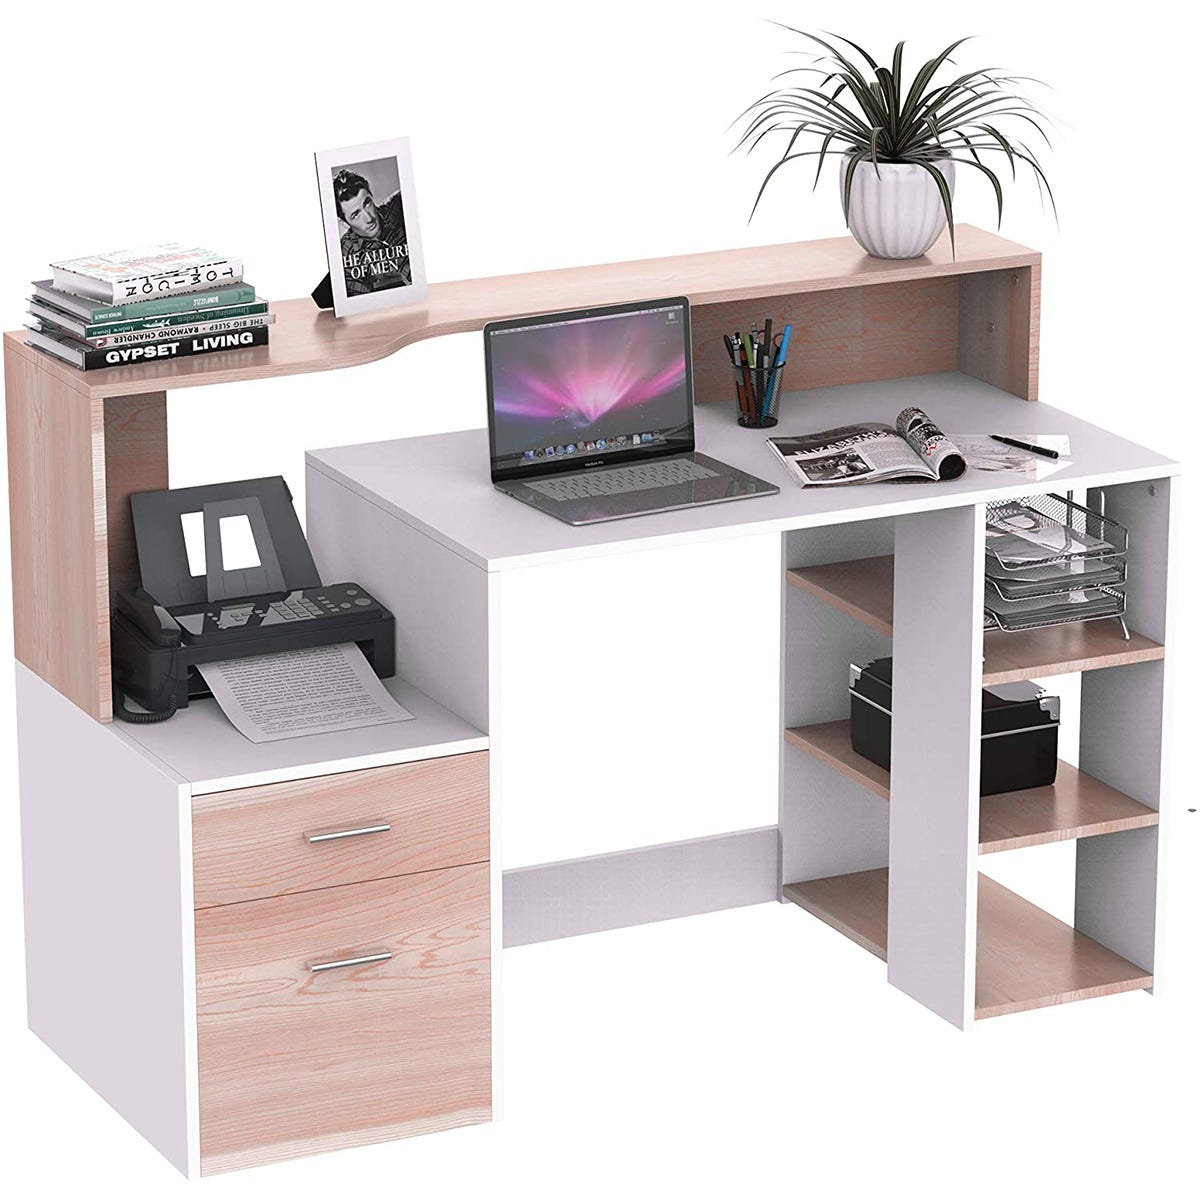 Zennor Galena Multi Level Computer Desk with Shelves & Storage - Oak/White